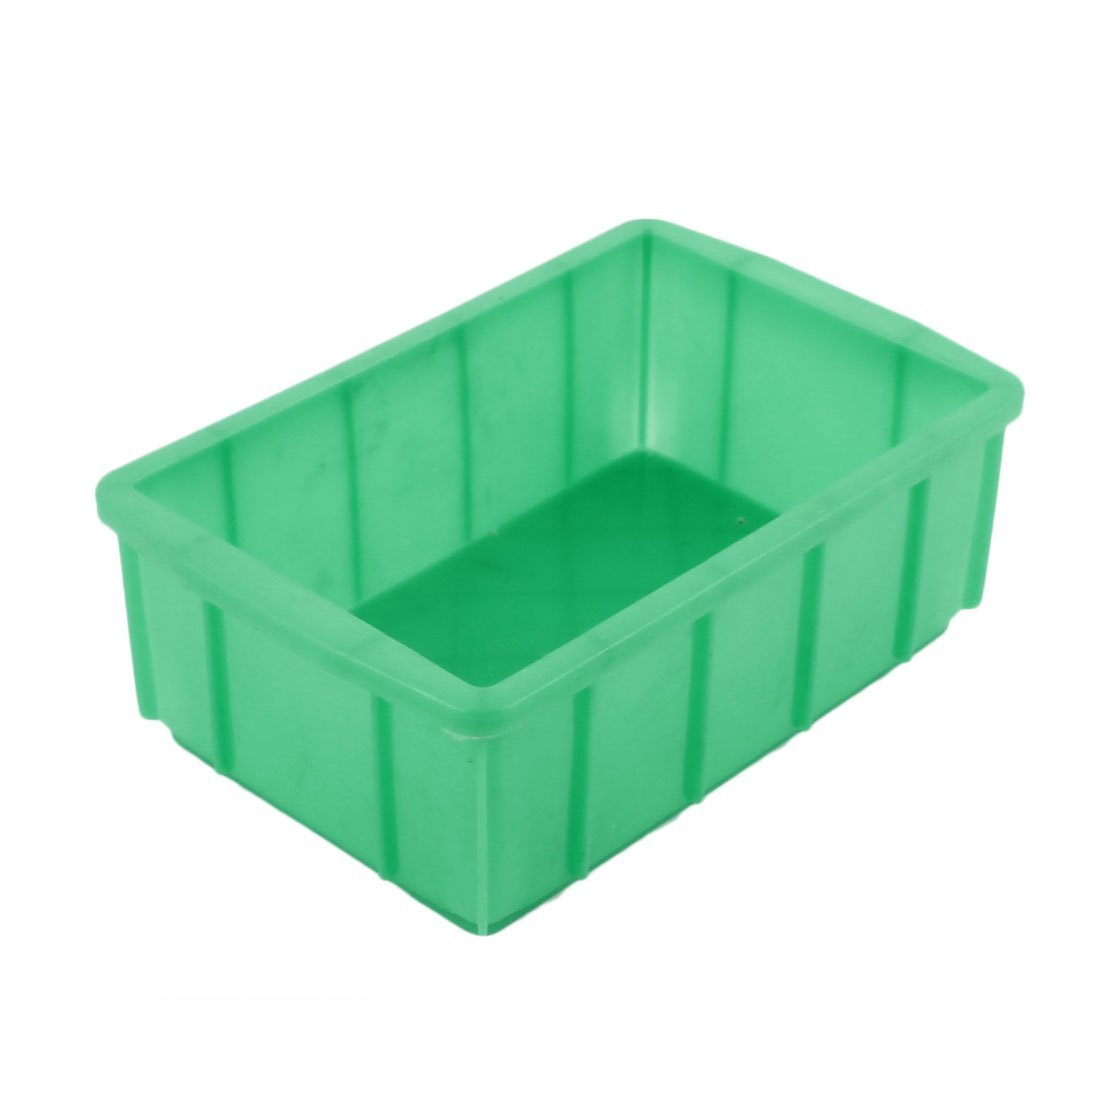 Aexit Green Plastic Tool Organizers Rectangular Electronic Components Storage Tool Boxes Box Case